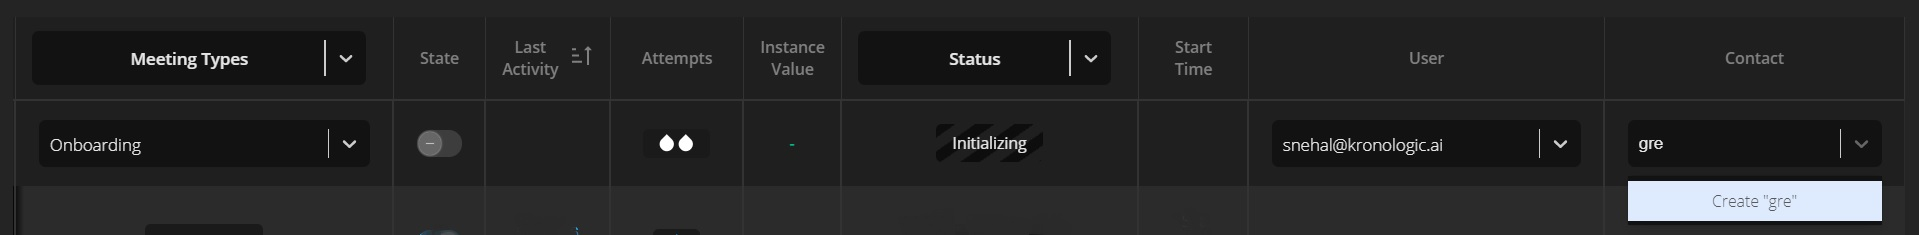 New contact on instance